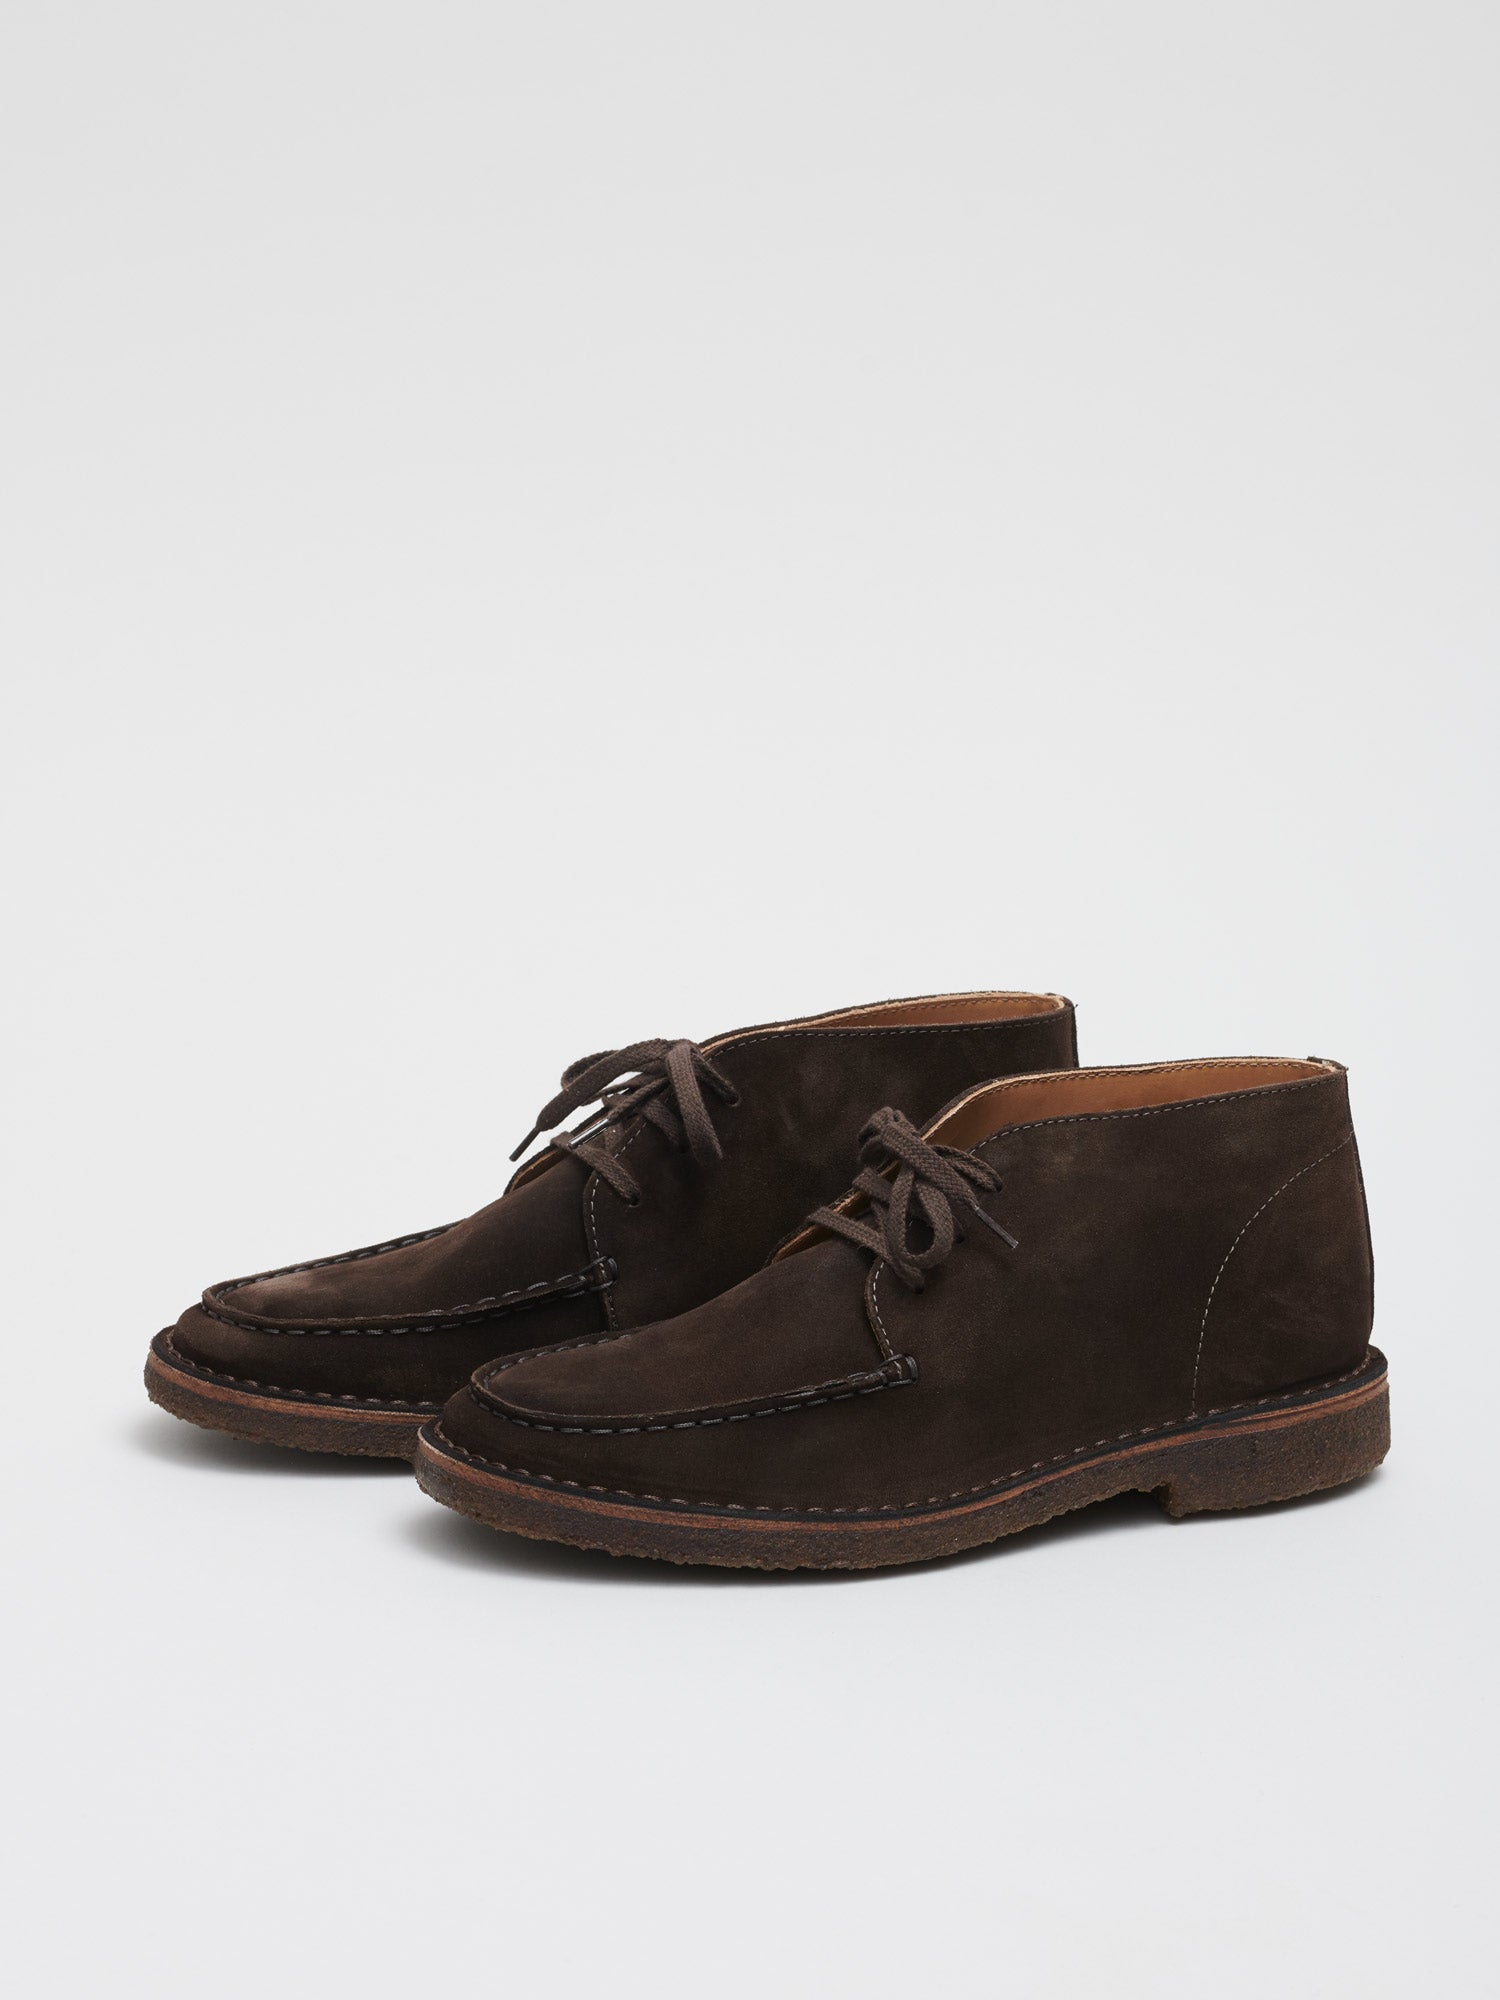 Crosby Moc-Toe Chukka Boot, Dark Brown Suede